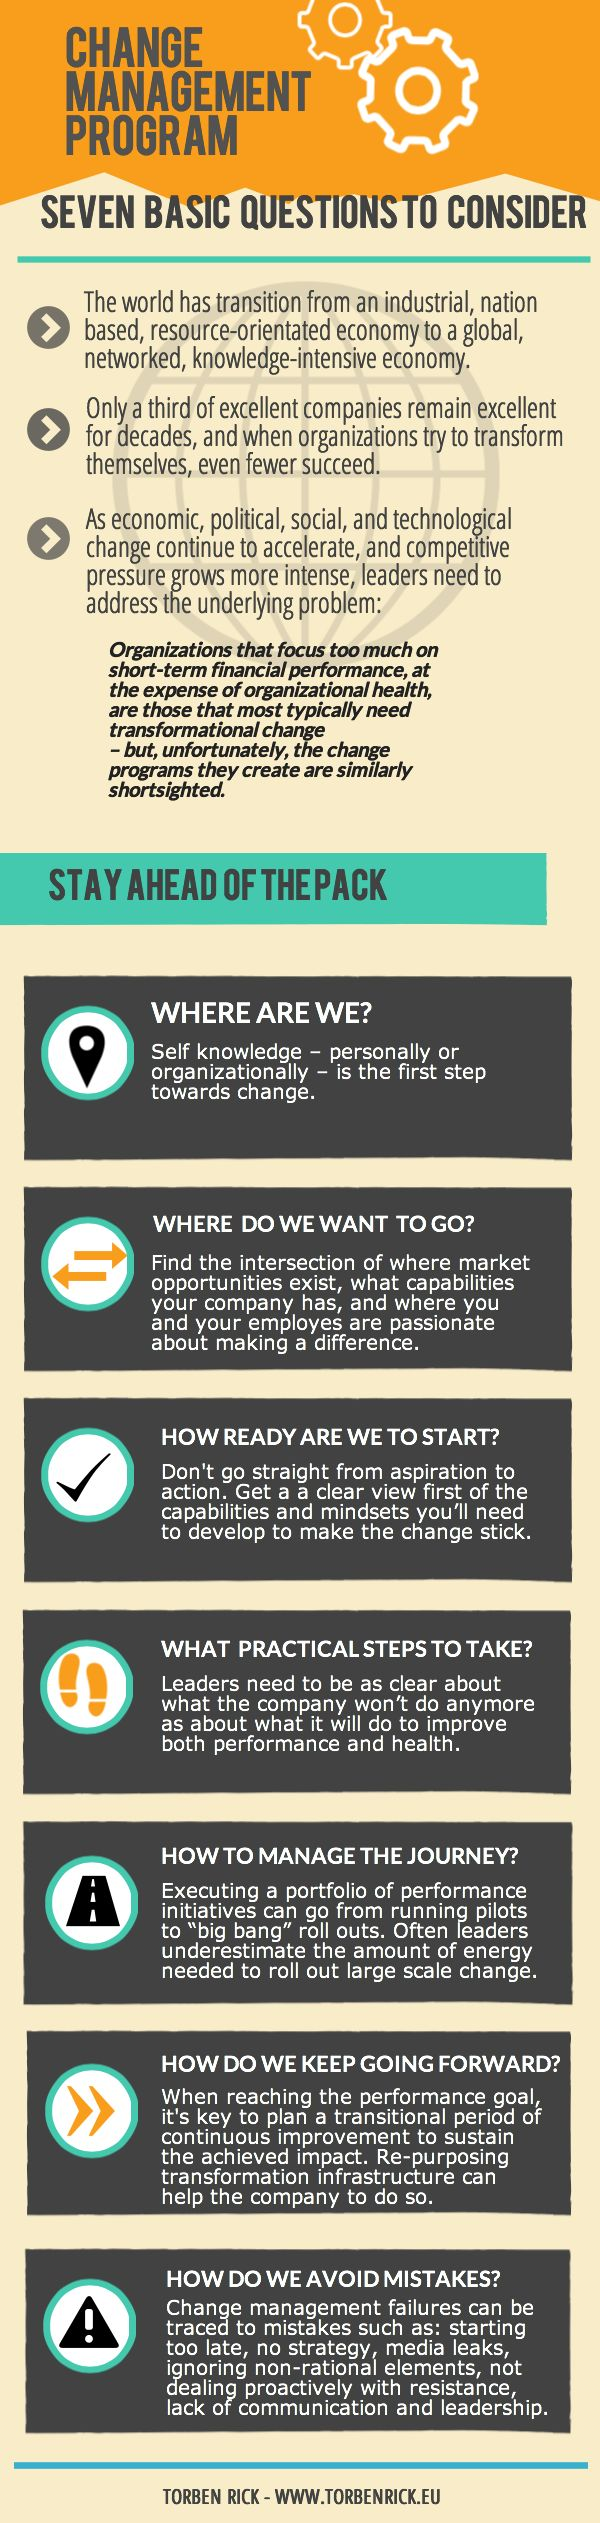 Infographic: Seven basic change management questions to consider #changemanagement